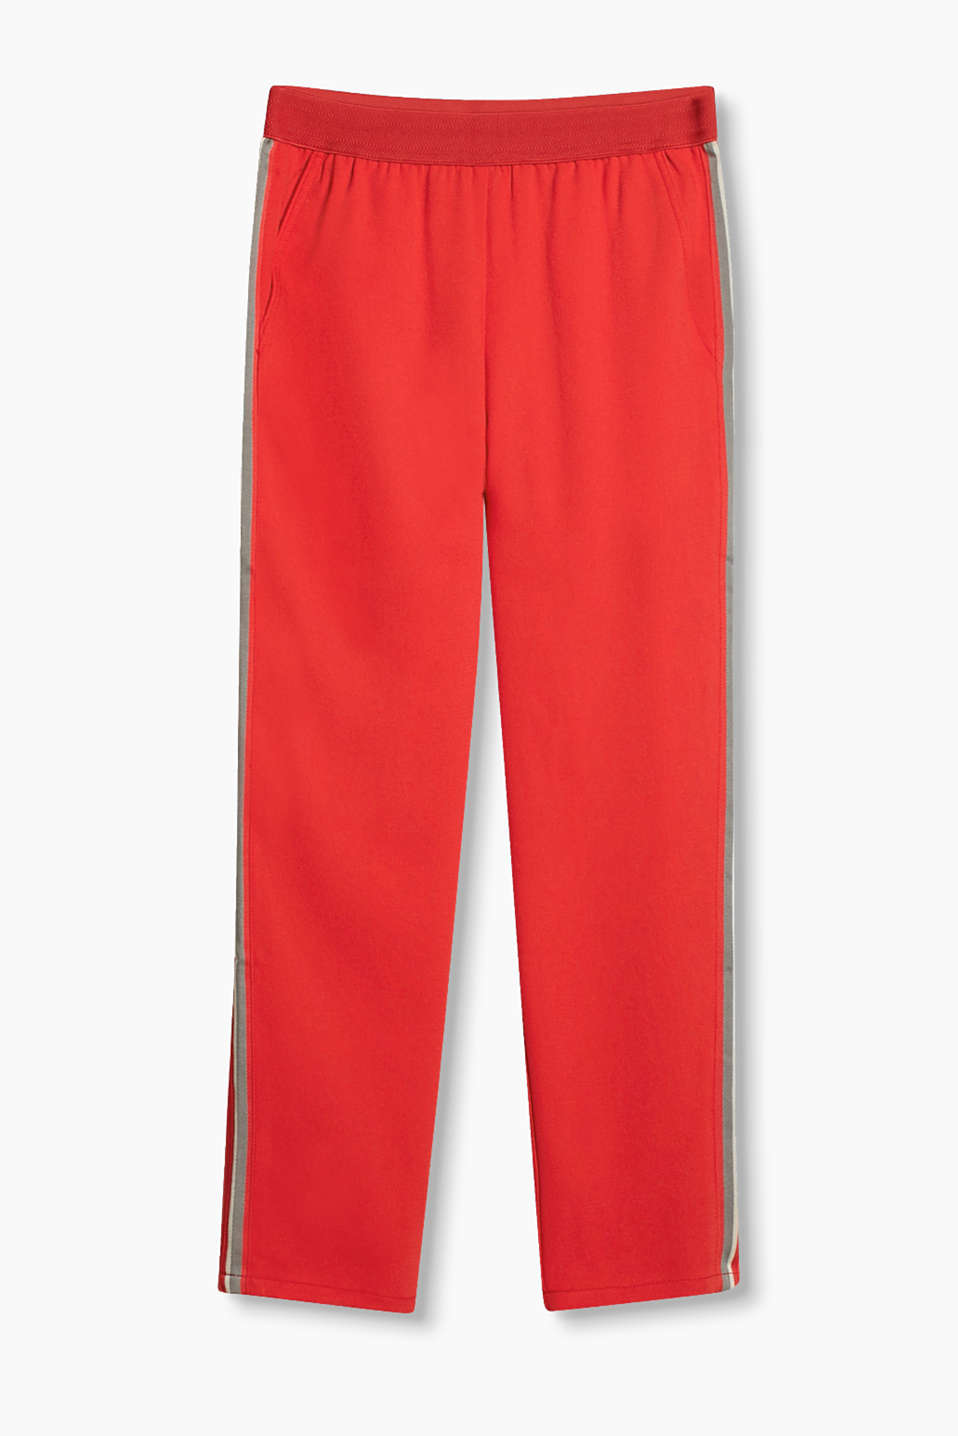 Sporty crêpe trousers with a striped look on the outer seam